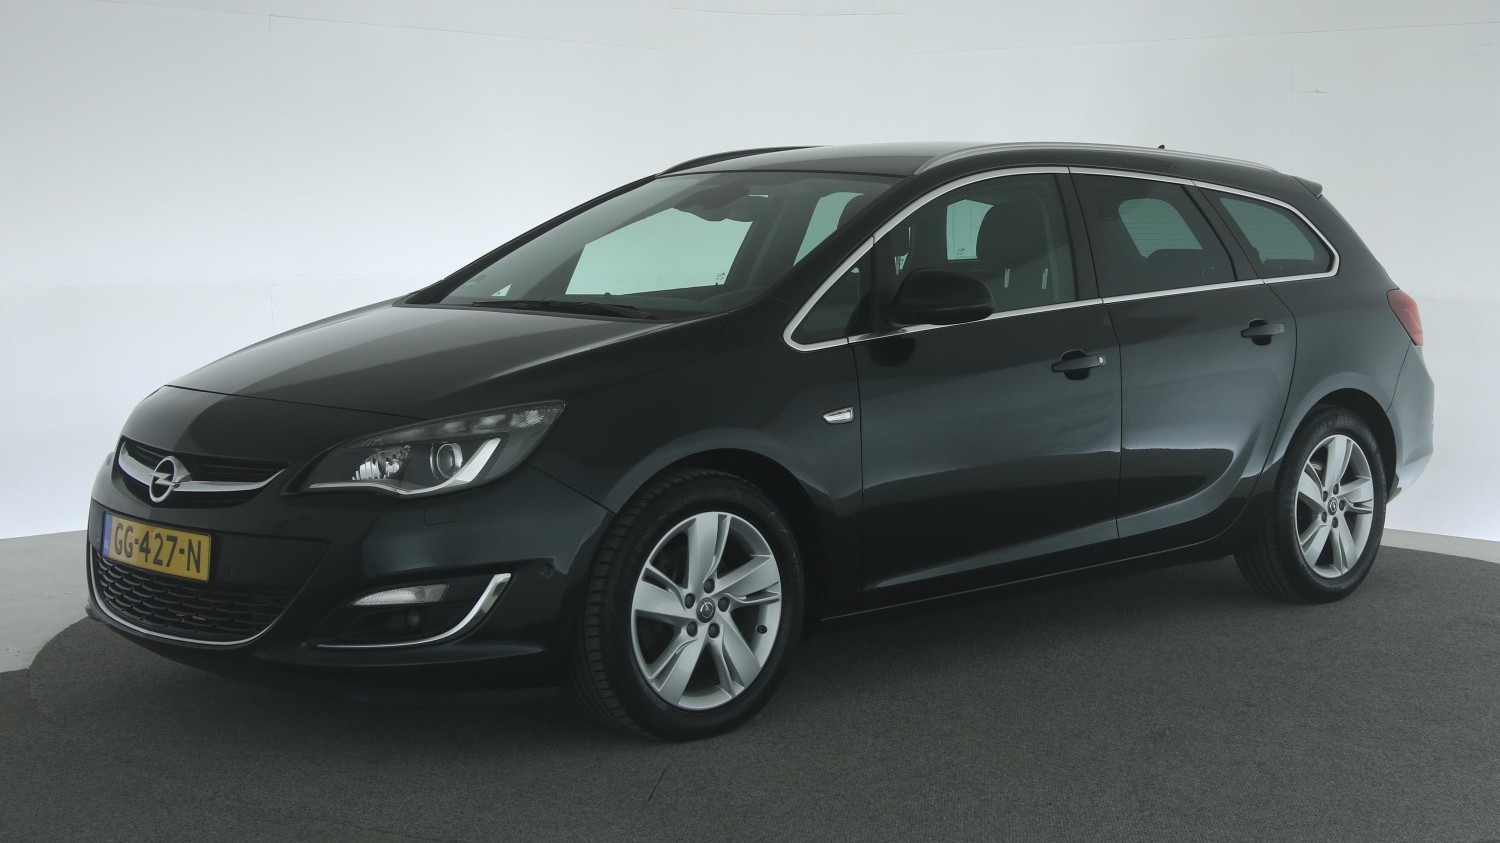 Opel Astra Station 2015 GG-427-N 1